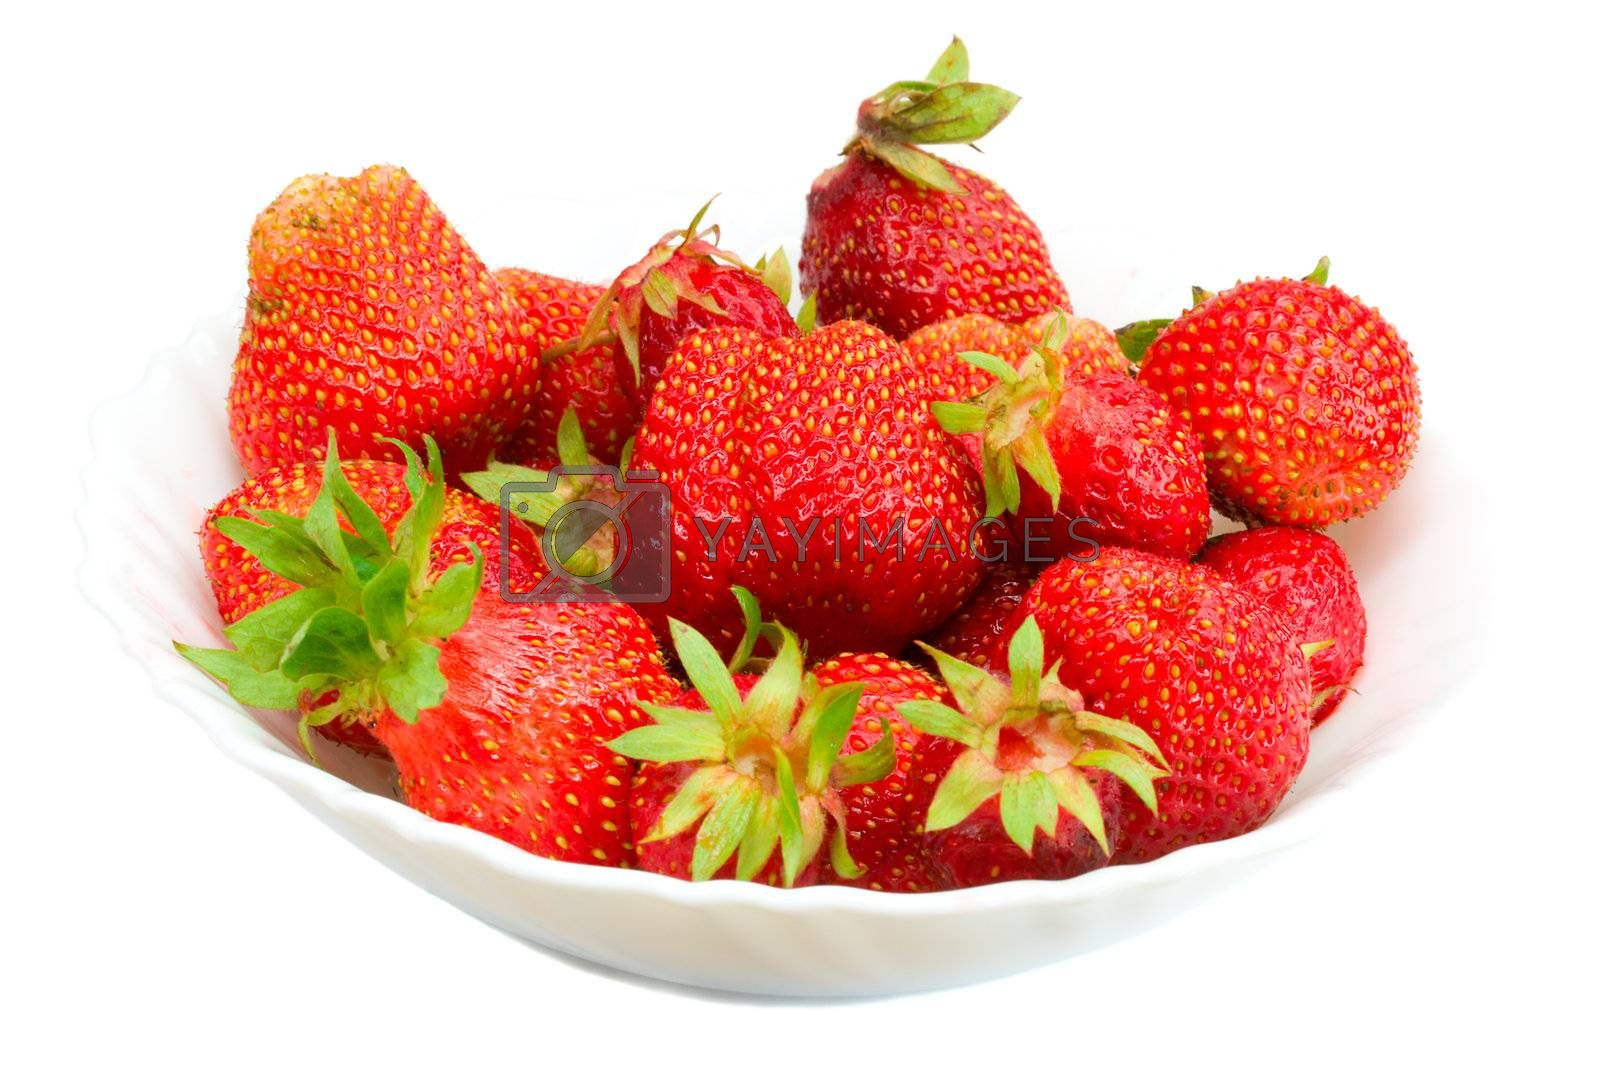 many strawberries on plate by Alekcey